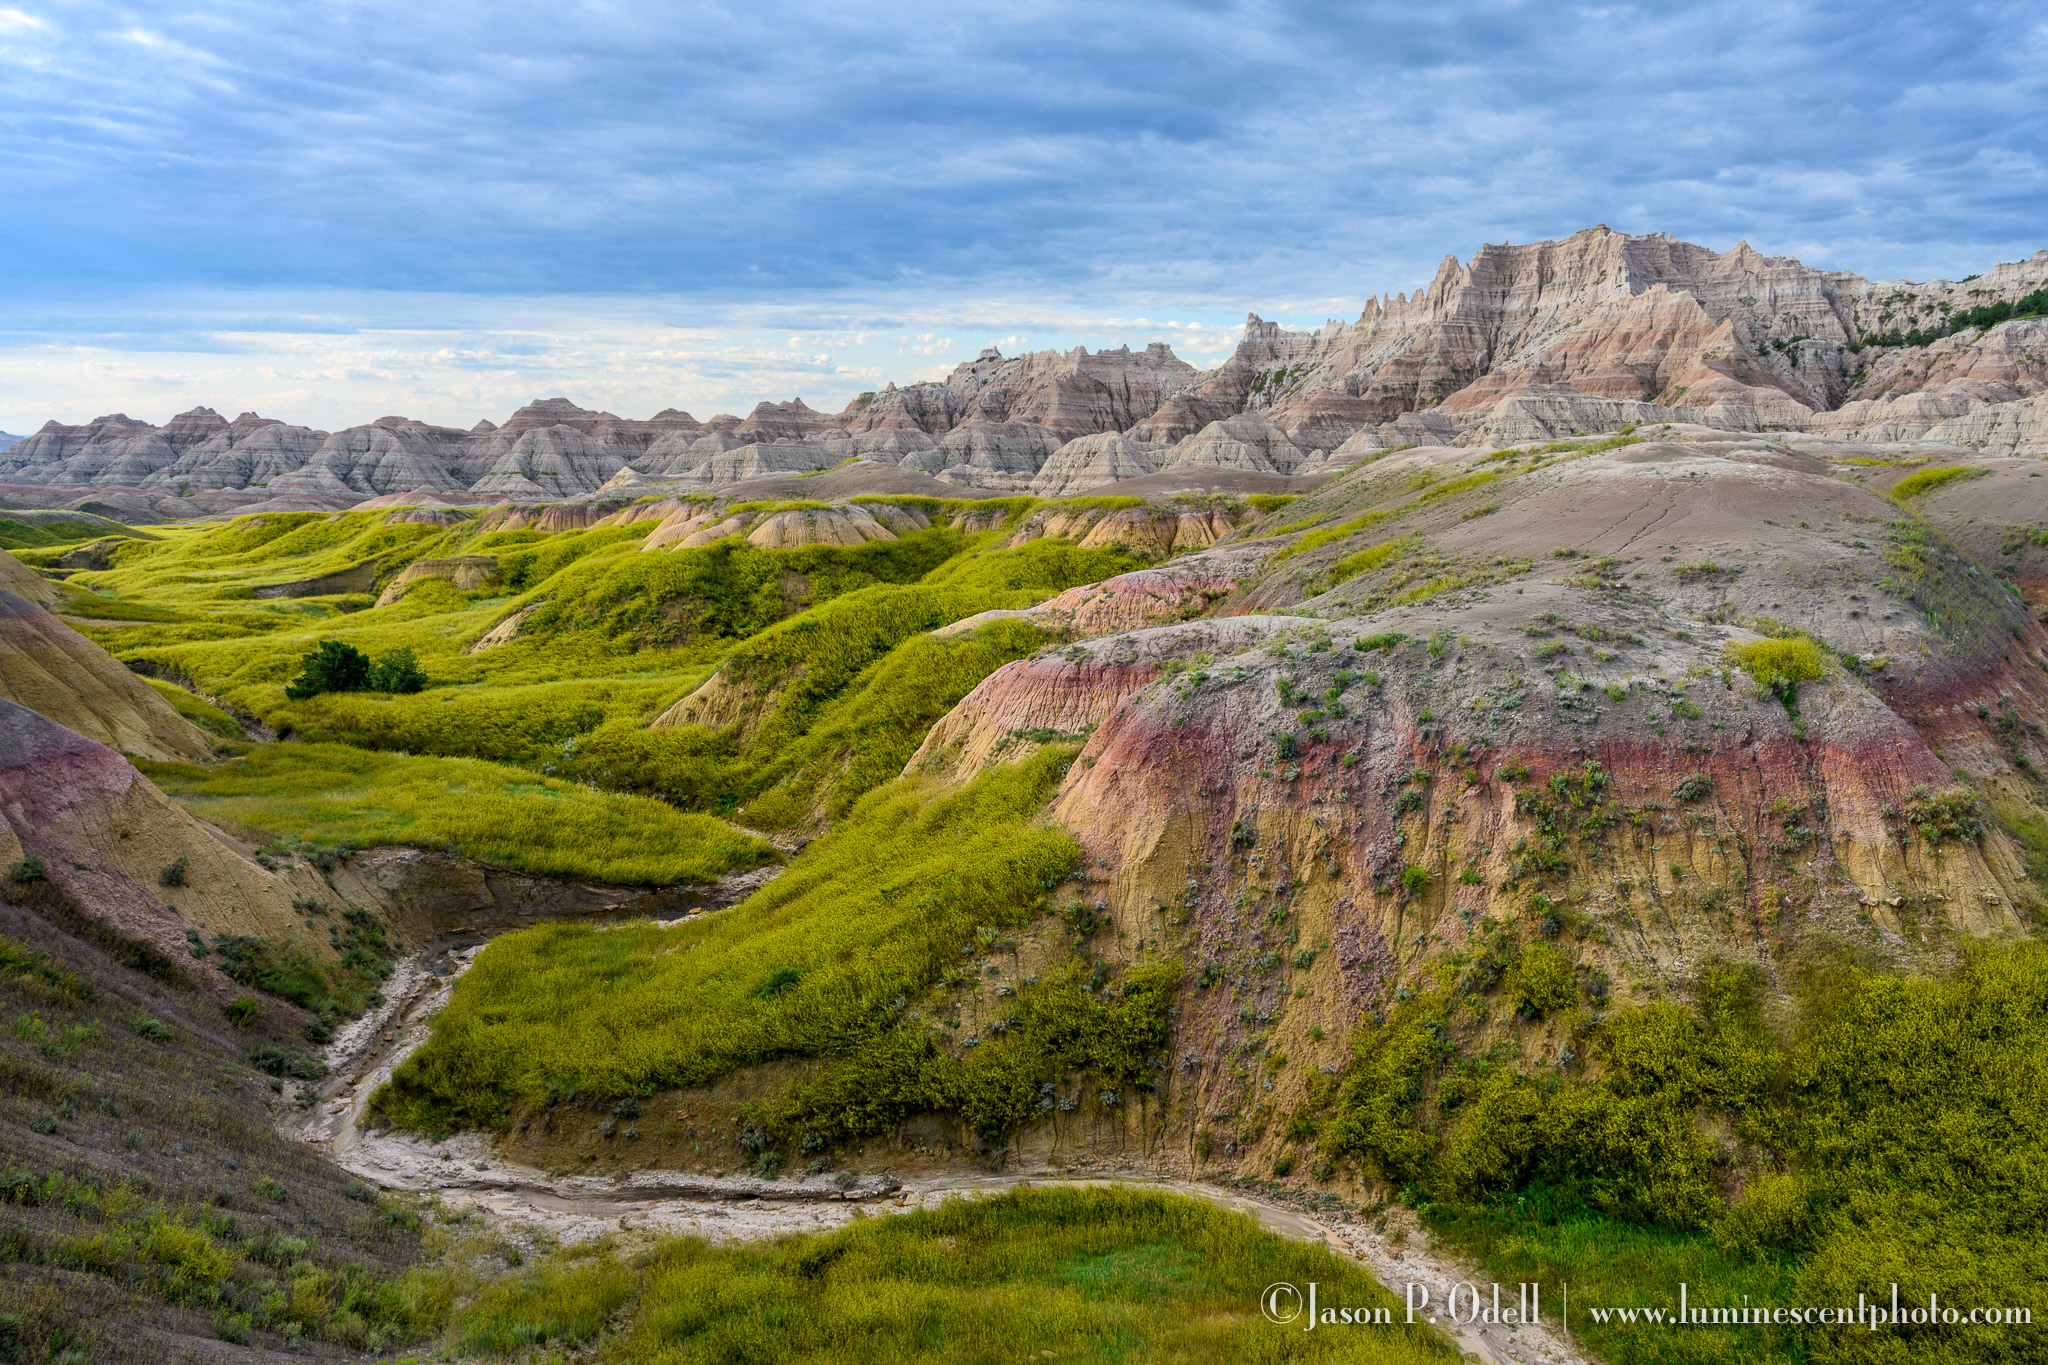 South Dakota Badlands ©Jason P. Odell